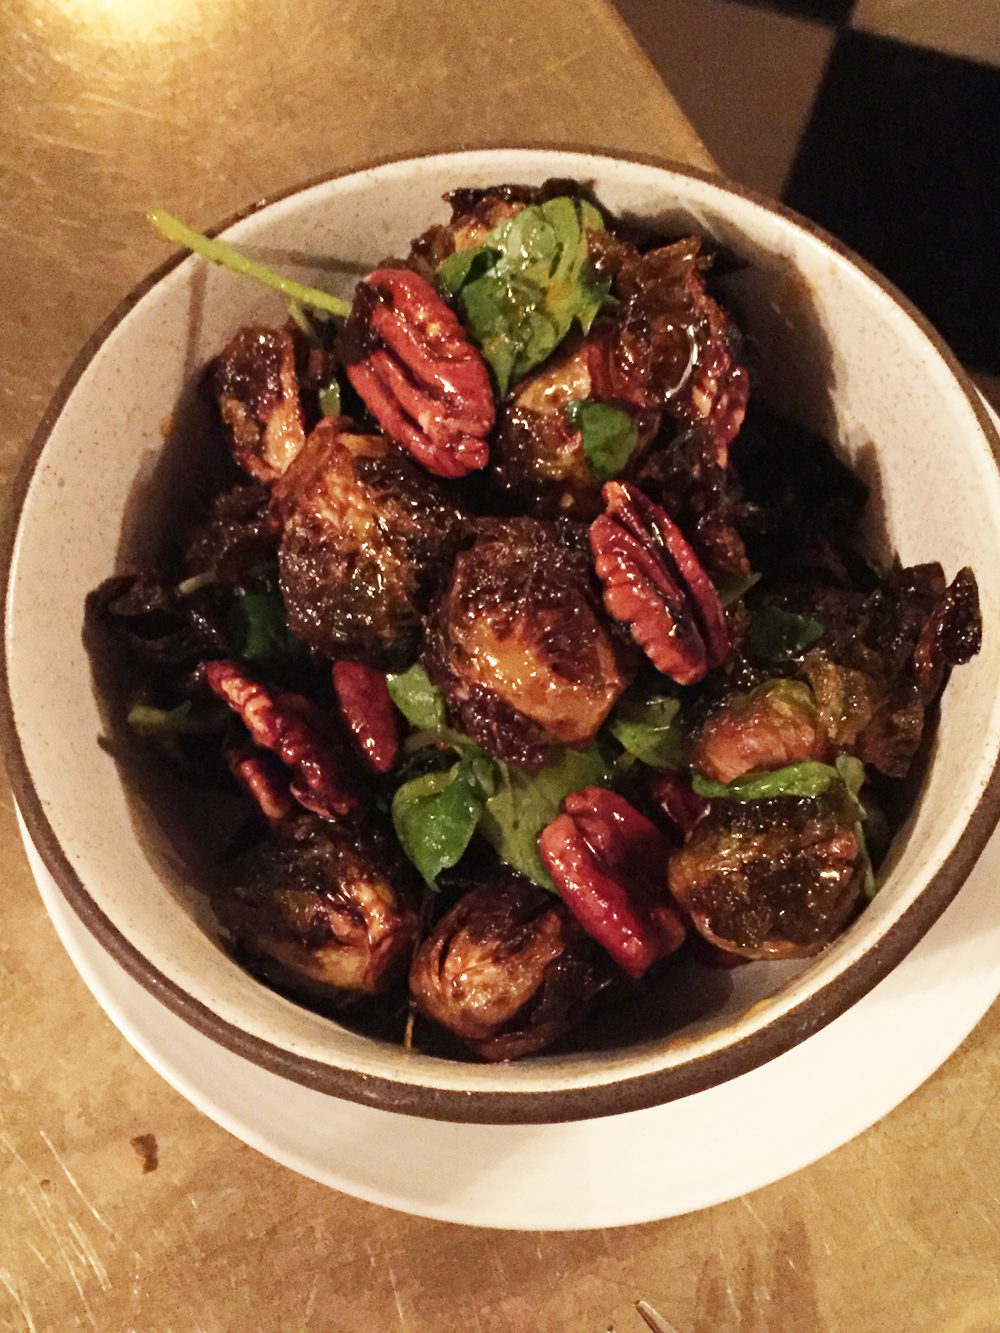 Sweet & spicy brussels sprouts with gram, pecans, and garlic confit.